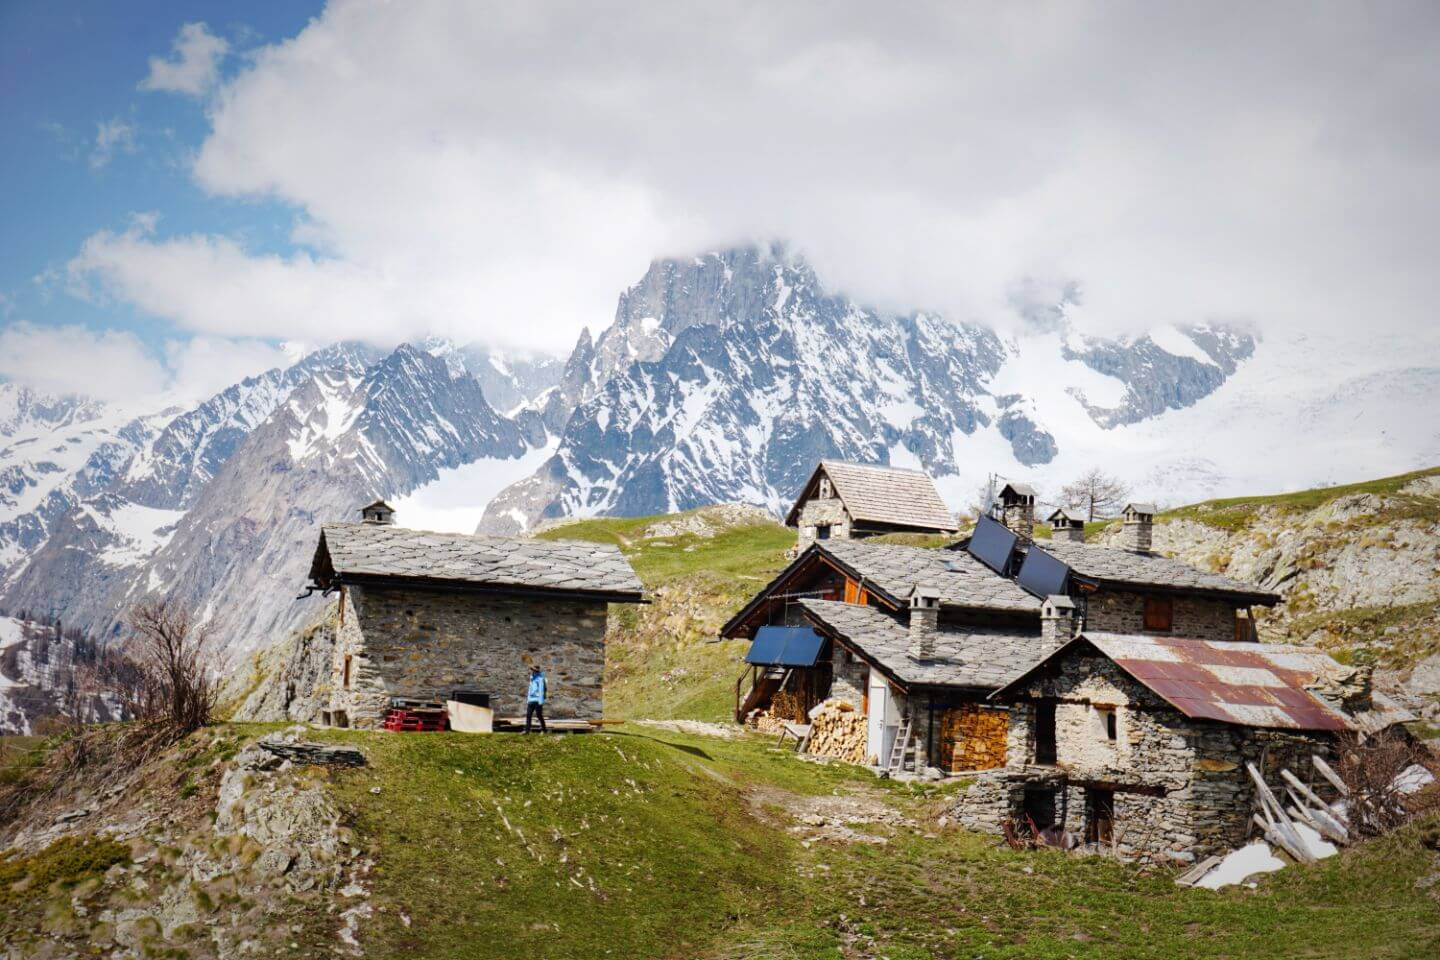 Rifugio Giorgio Bertone, Courmayeur - Best things to do in Aosta Valley, Italy